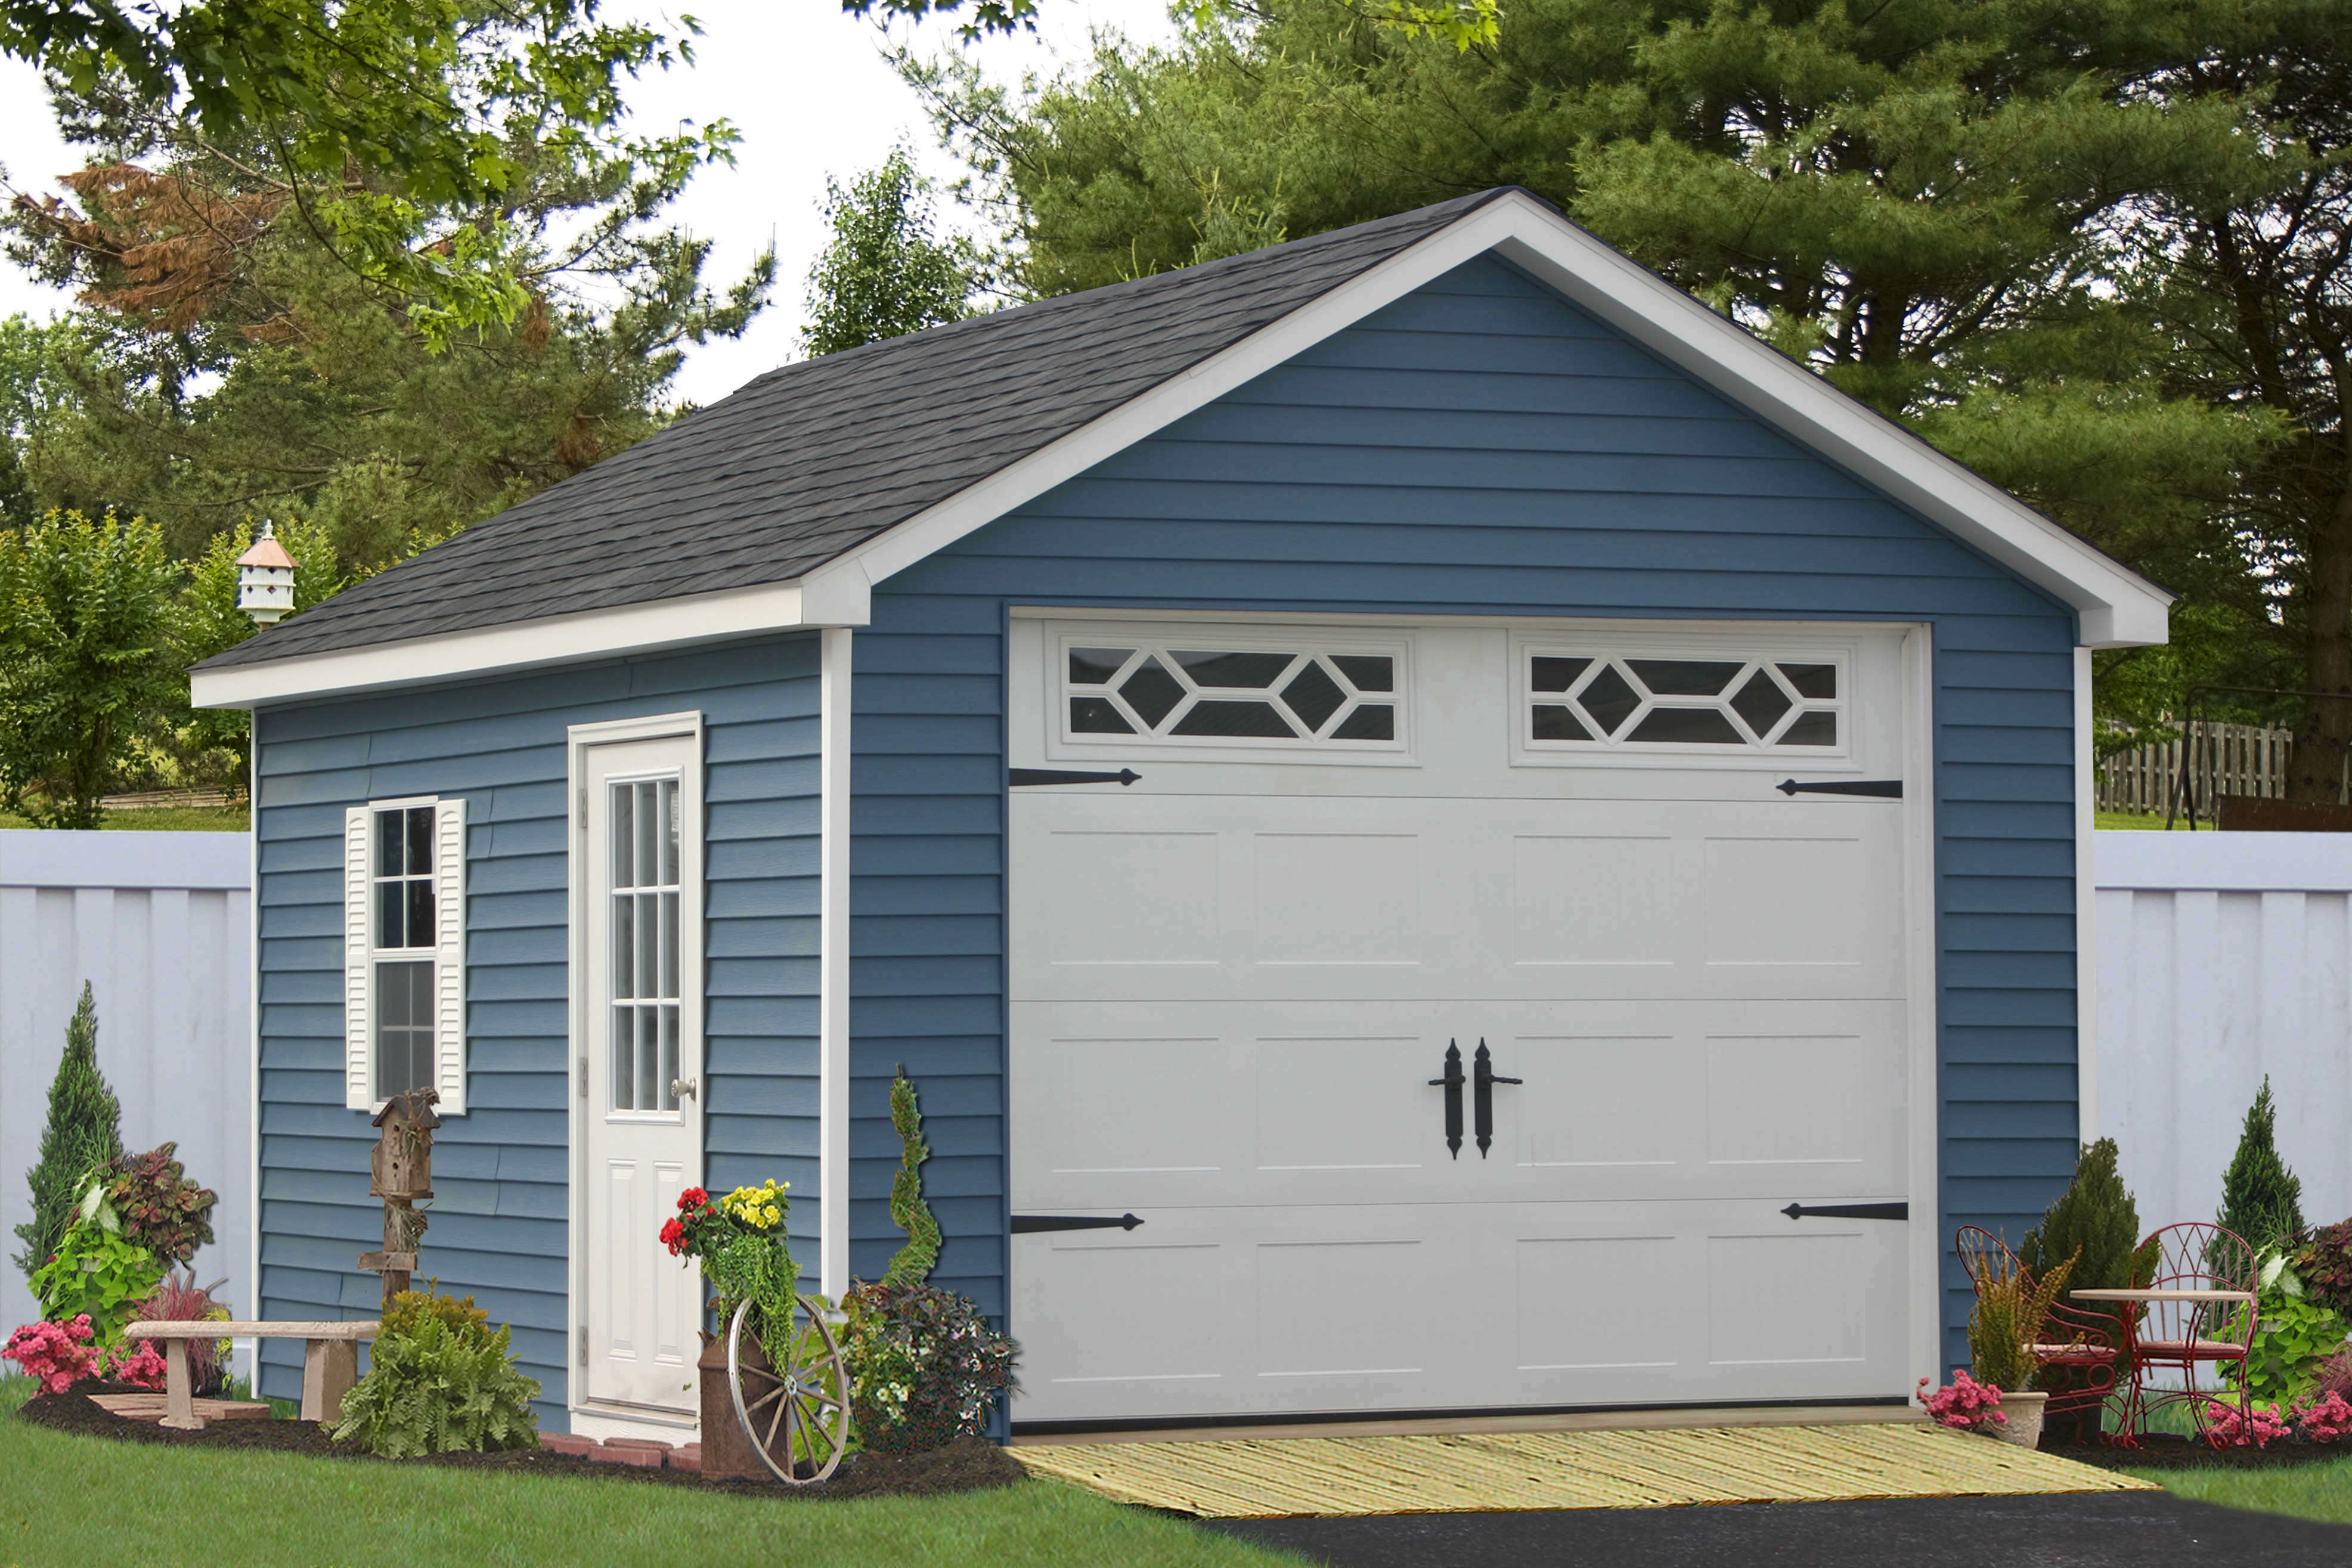 Custom Detached Garage For One Car And Motorcycle For Sale One Car Garage With Carports